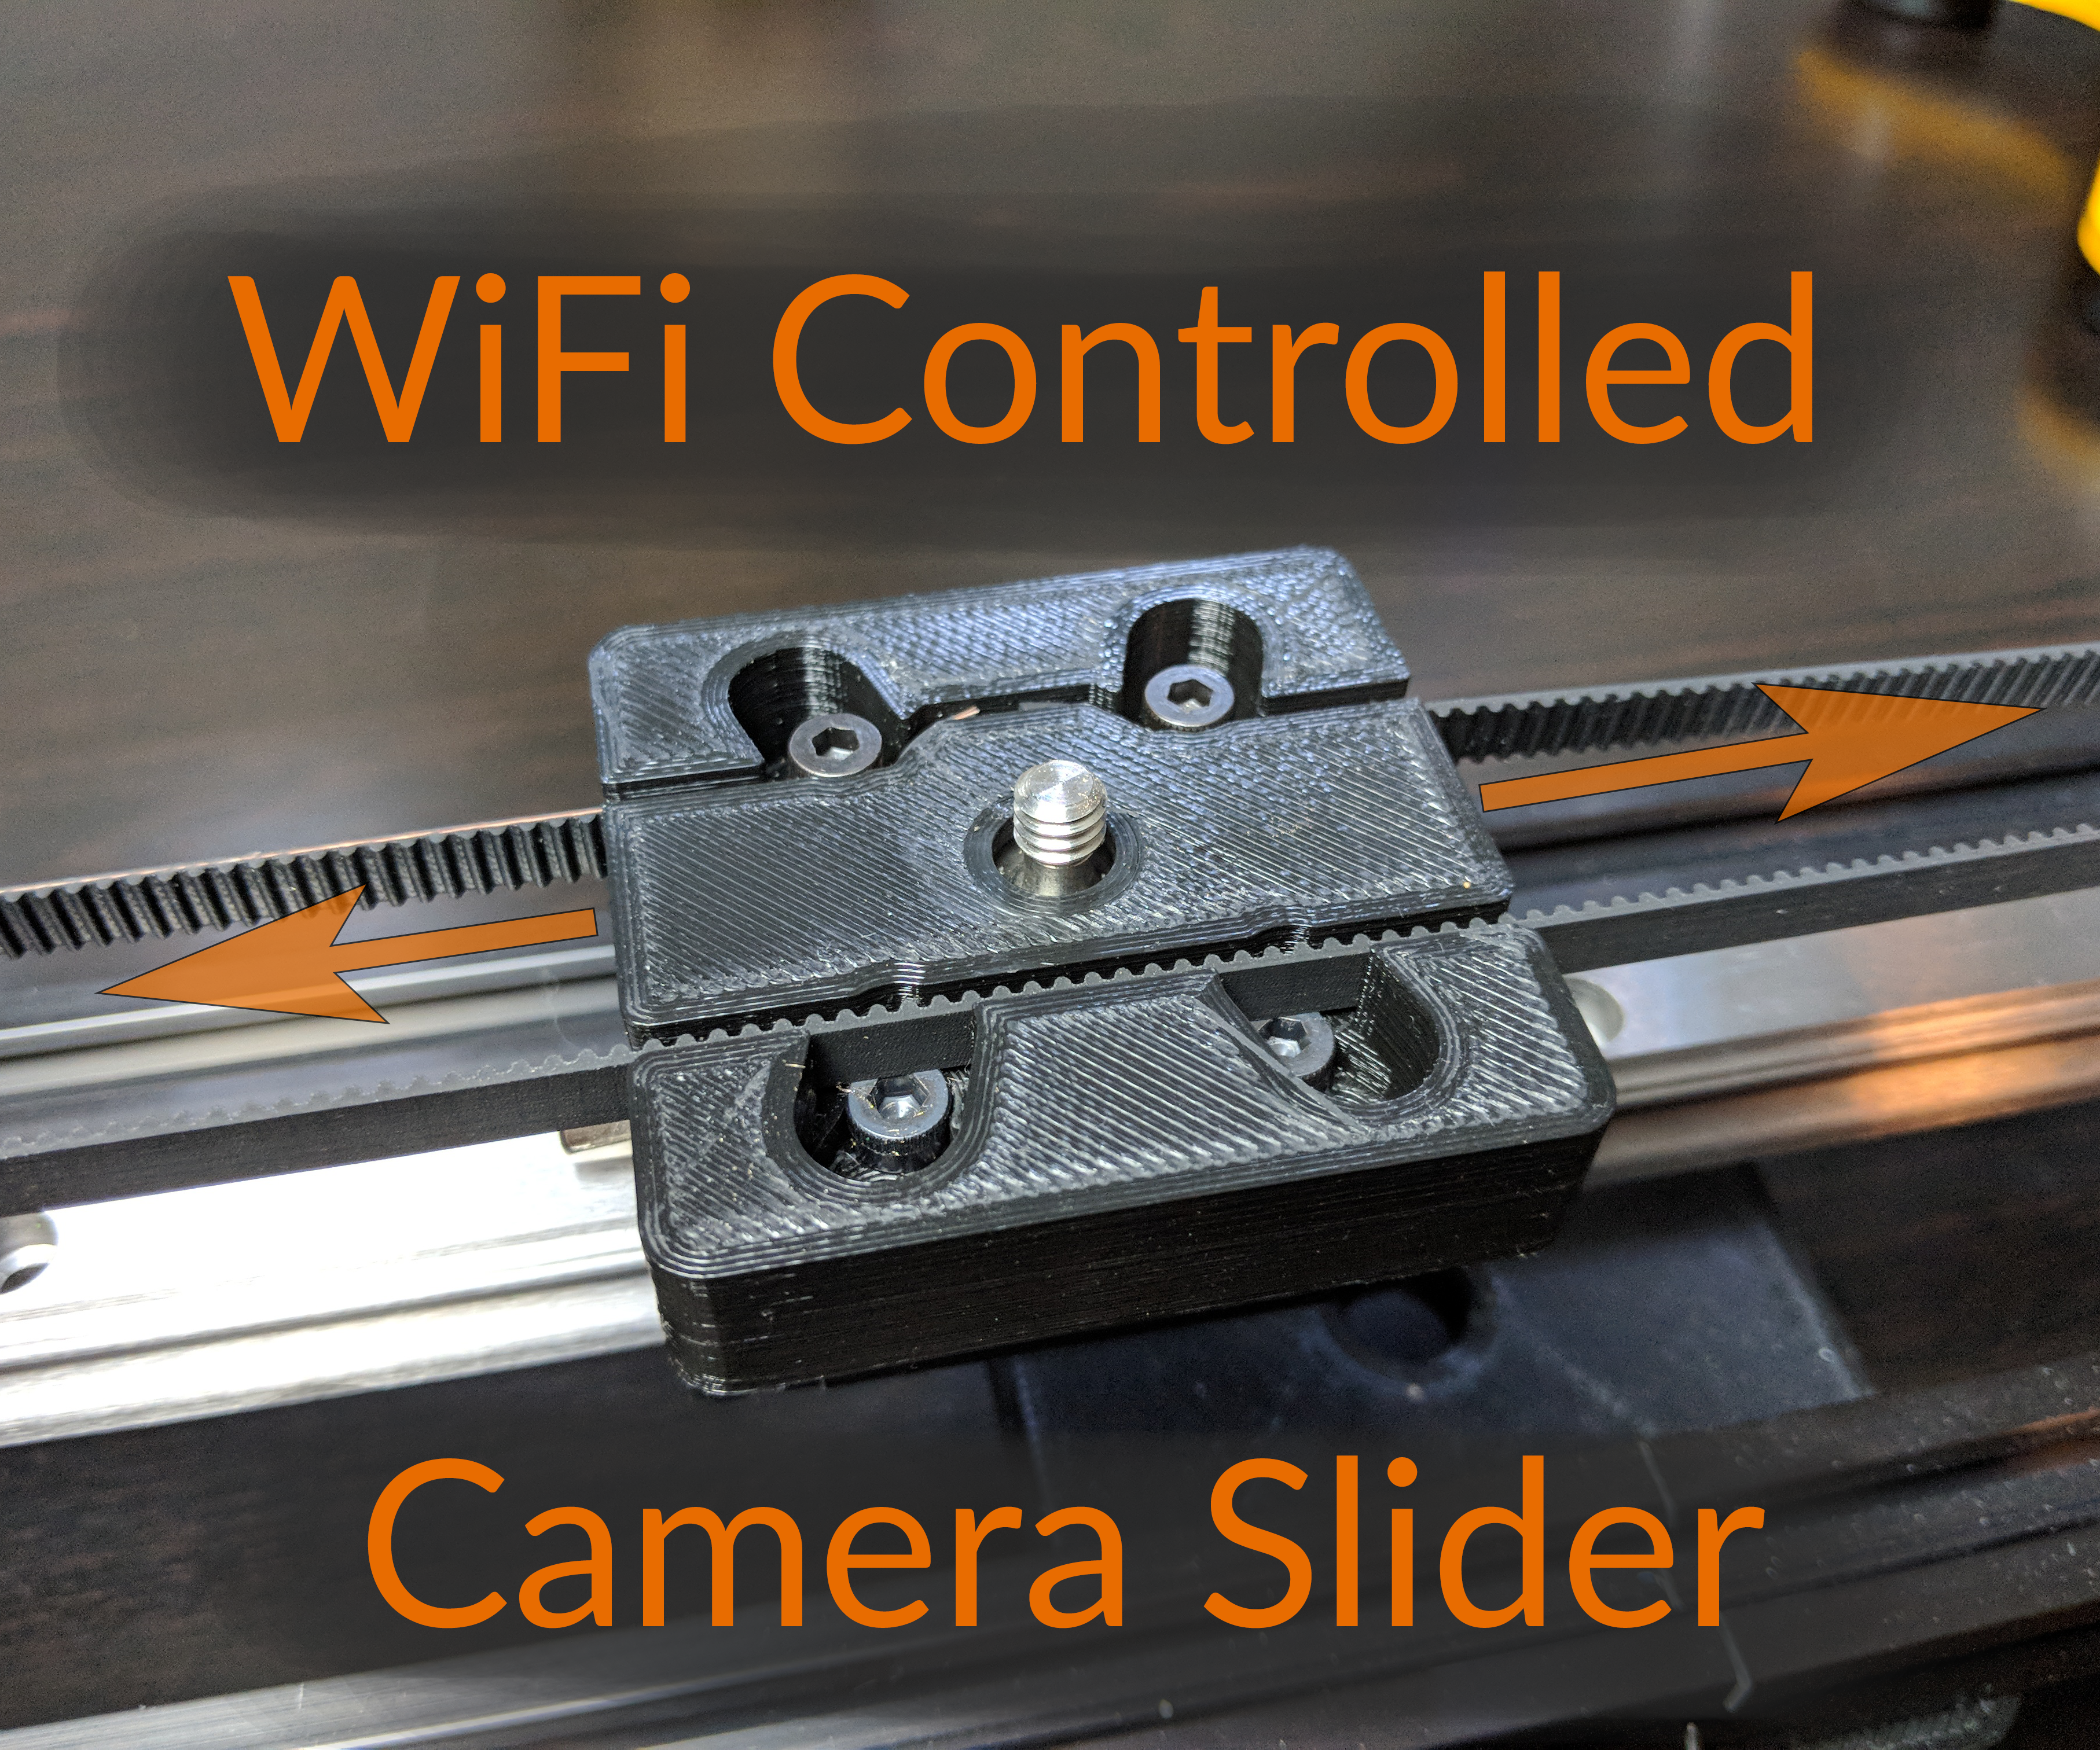 WiFi Controlled Camera Slider